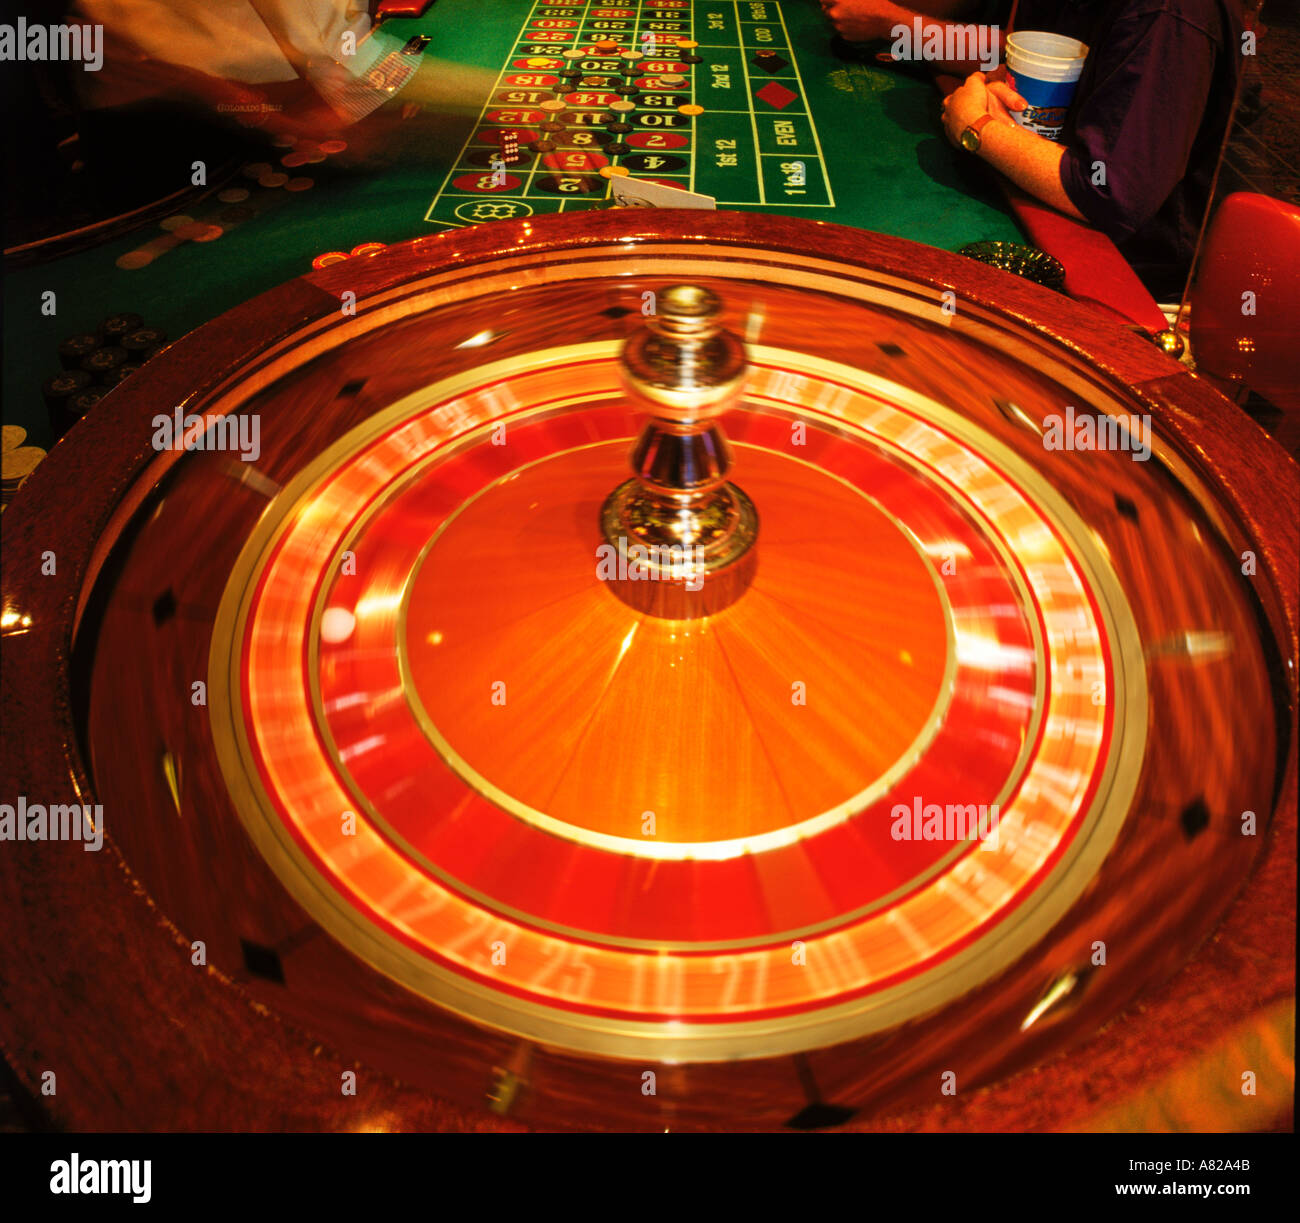 Betting chips in roulette ez skins ez life betting advice